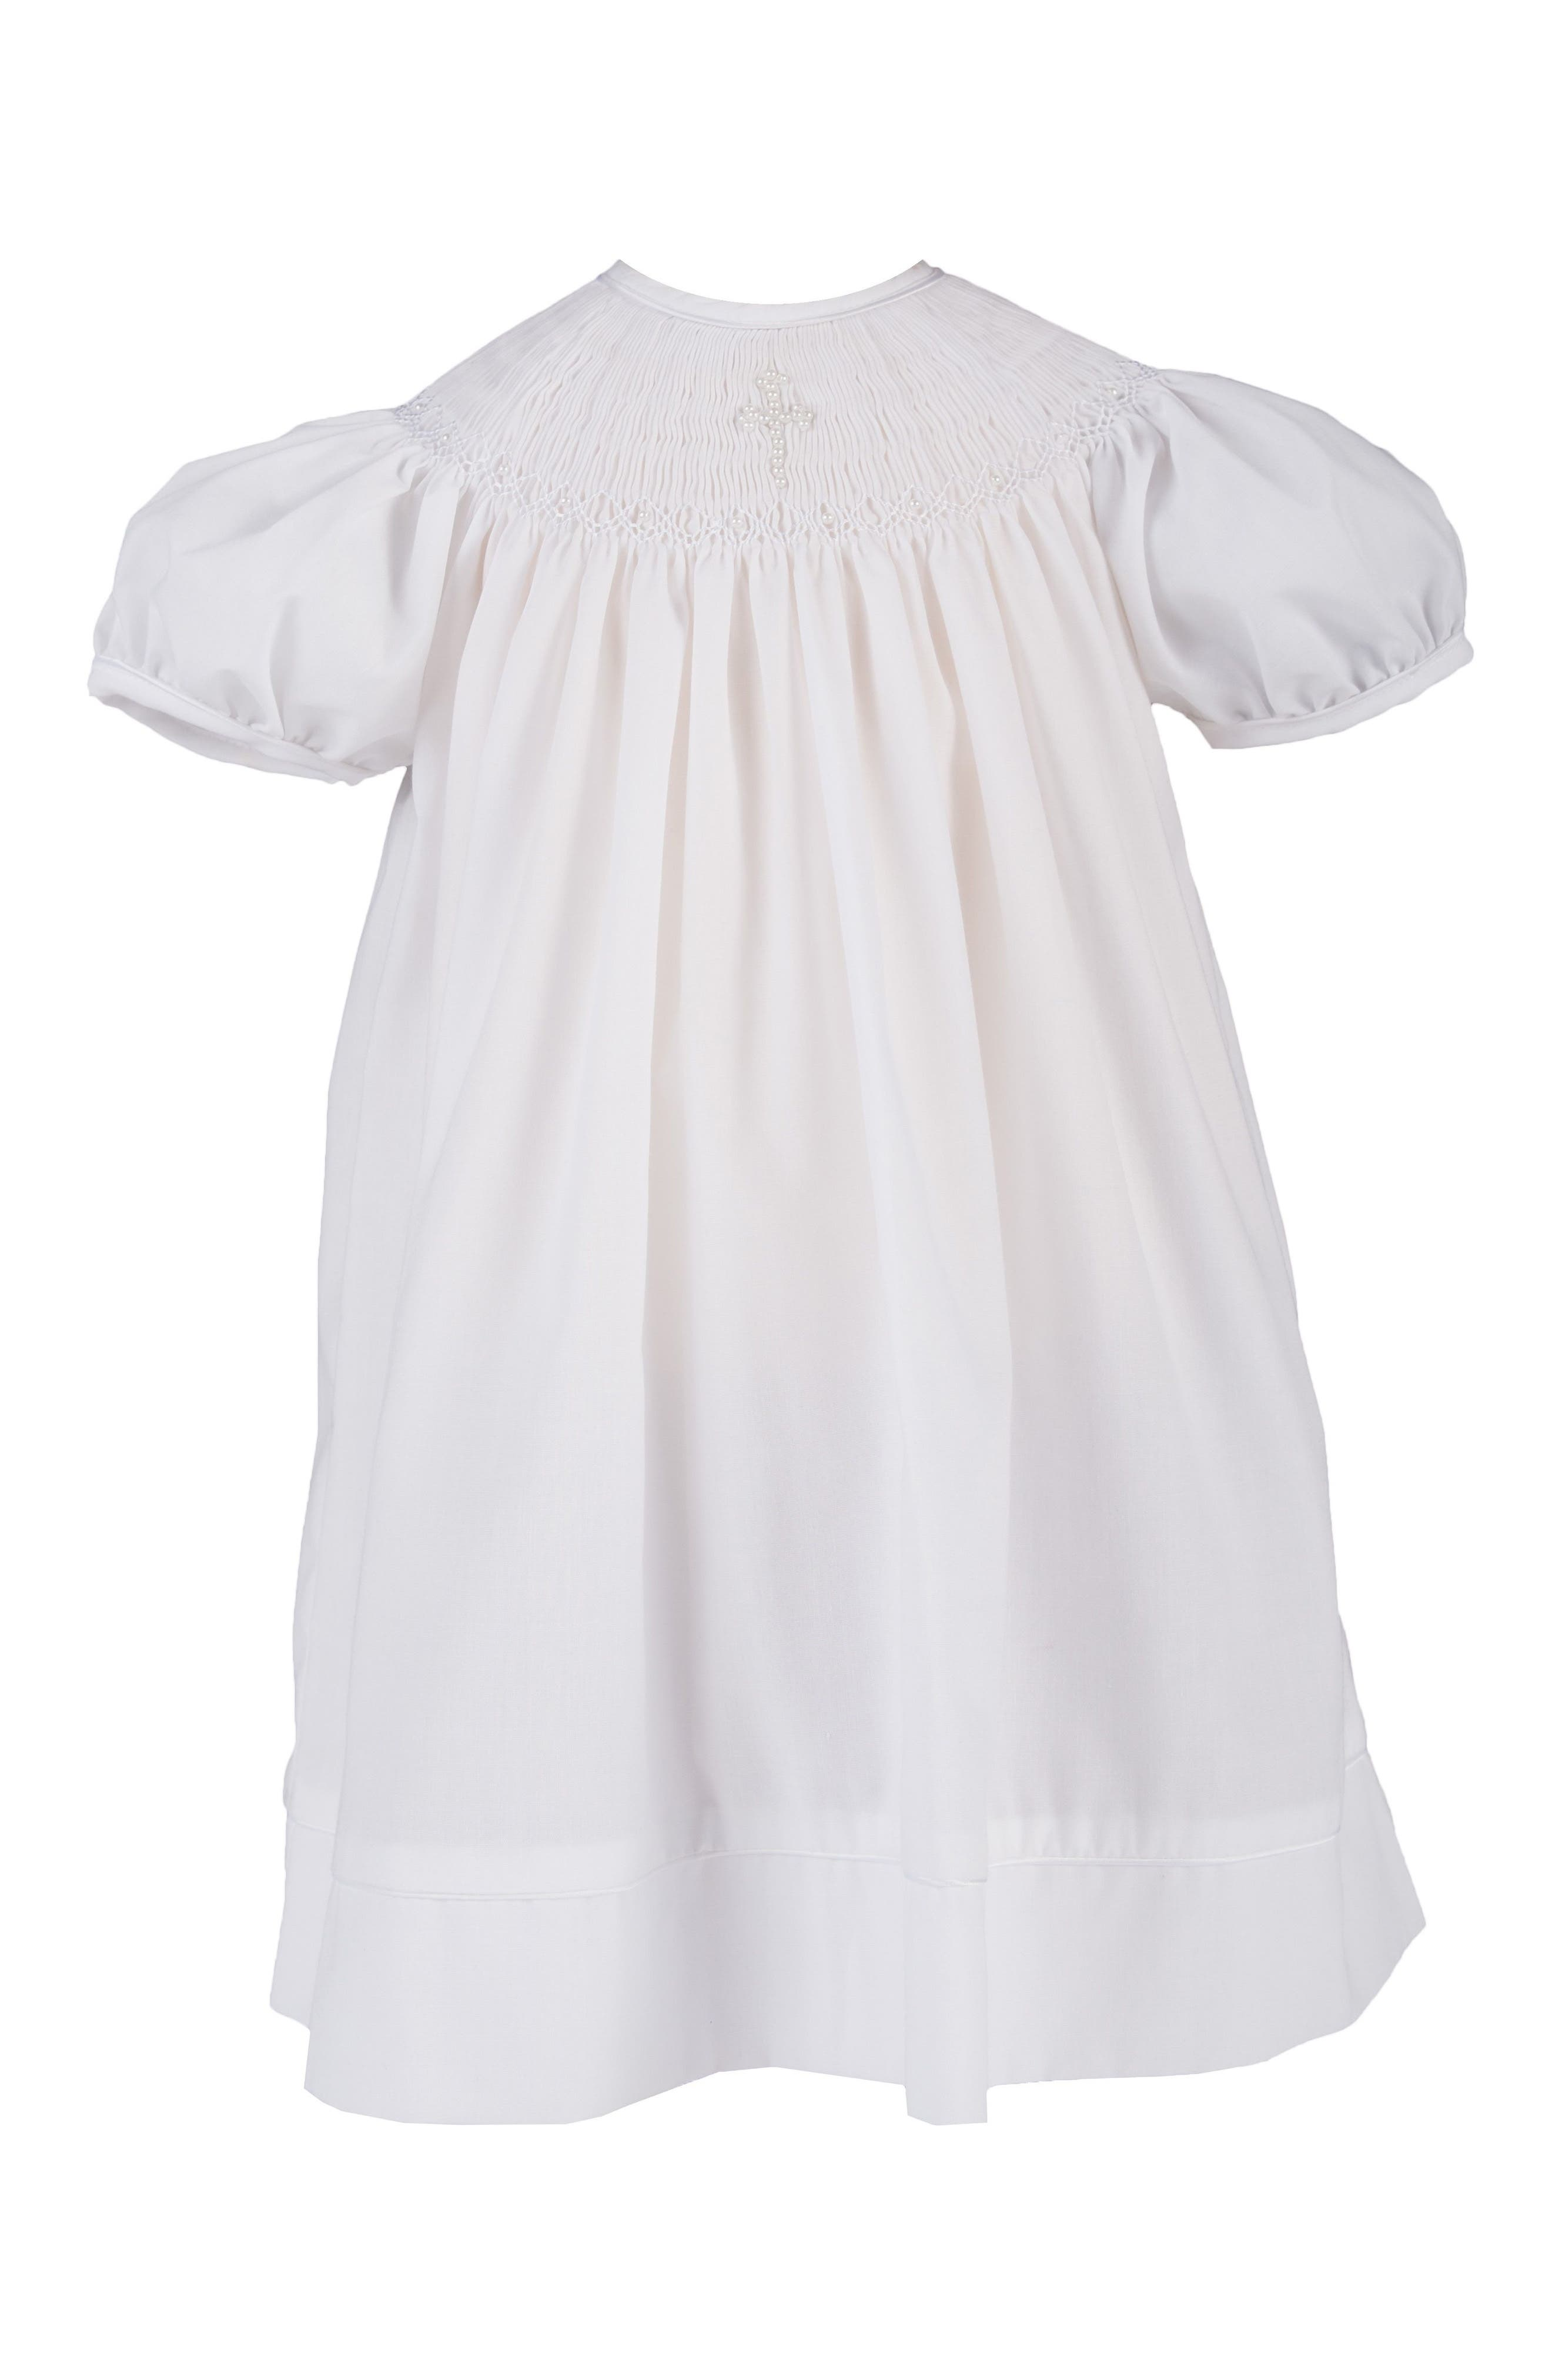 Main Image - Carriage Boutique Christening Gown & Bonnet Set (Baby Girls)